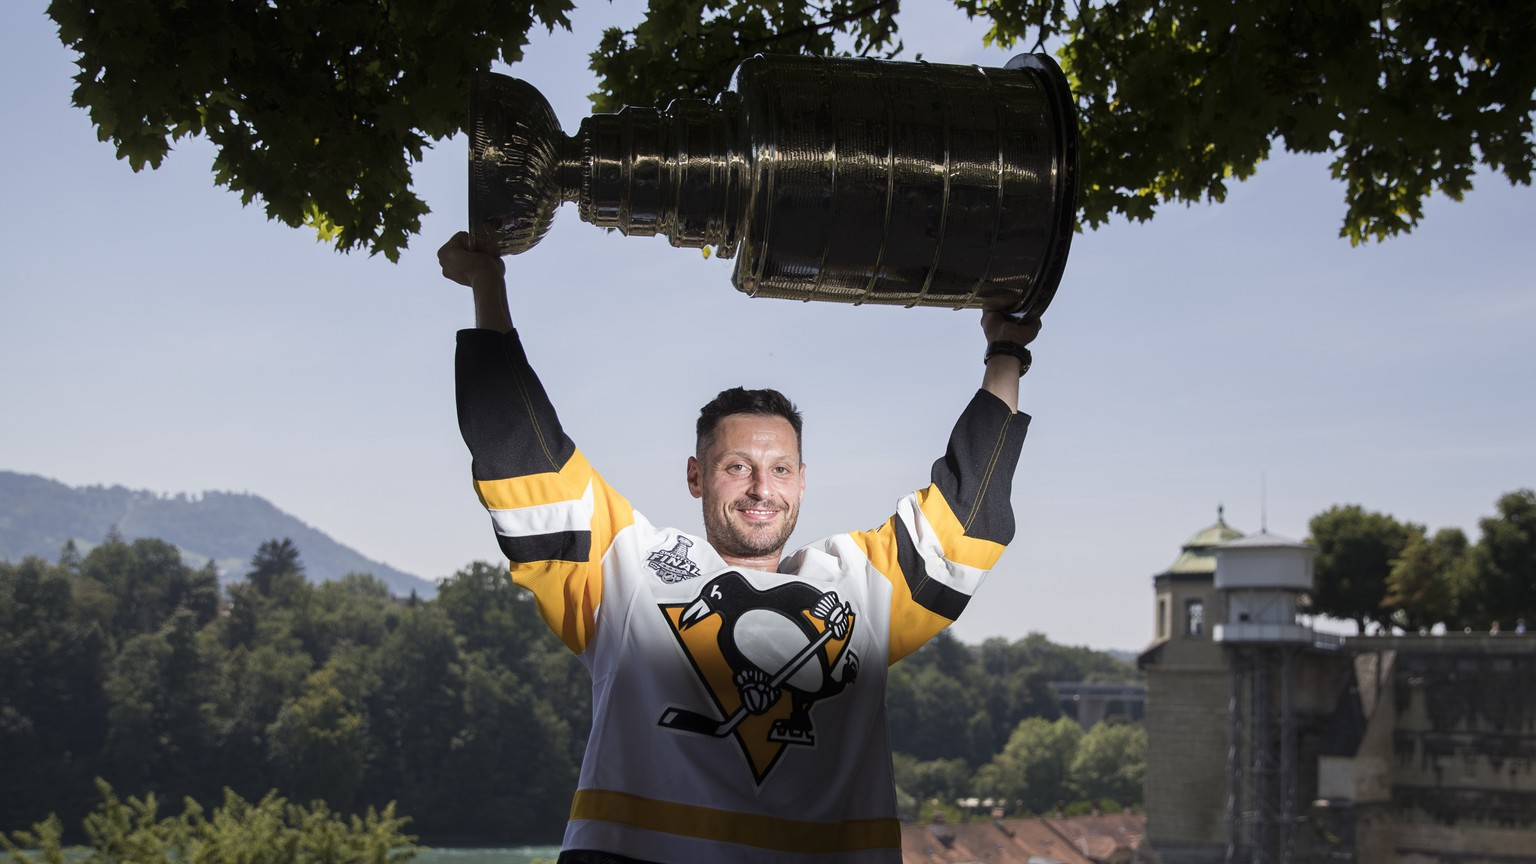 Switzerland's Mark Streit poses with the Stanley Cup trophy in Bern, Switzerland, August 2, 2017. Streit won the trophy with the Pittsburgh Penguins in 2017. (KEYSTONE/Peter Klaunzer)